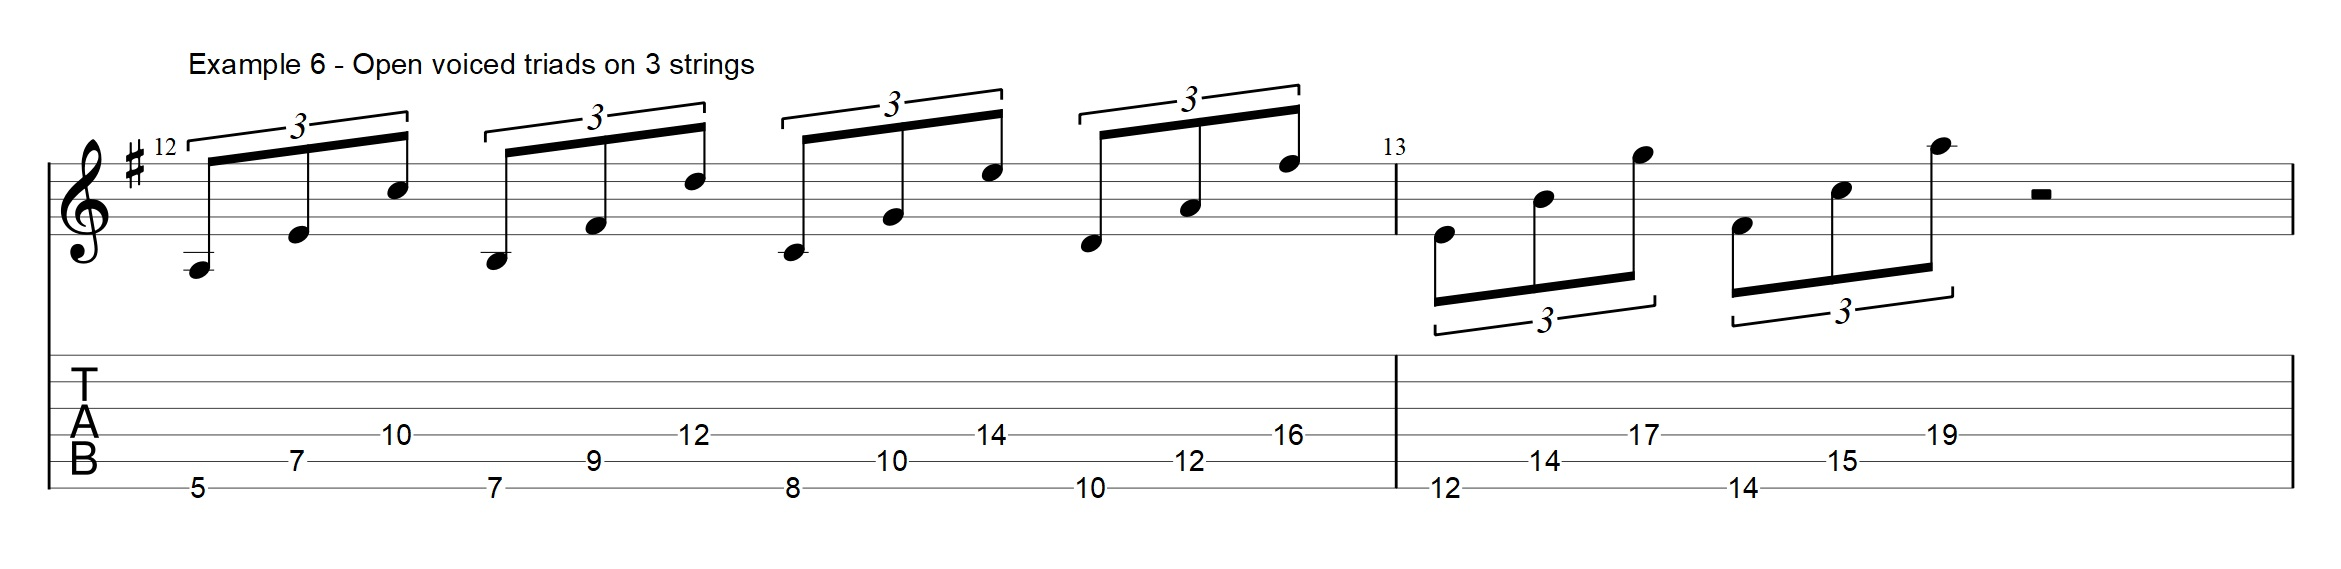 Jazz Guitar Chords Archives Jens Larsen How To Read Chord Diagrams Traveling Lessons With This I Think The Low And High G Major Are Both A Bit Tricky But It Depends On You Sit Your